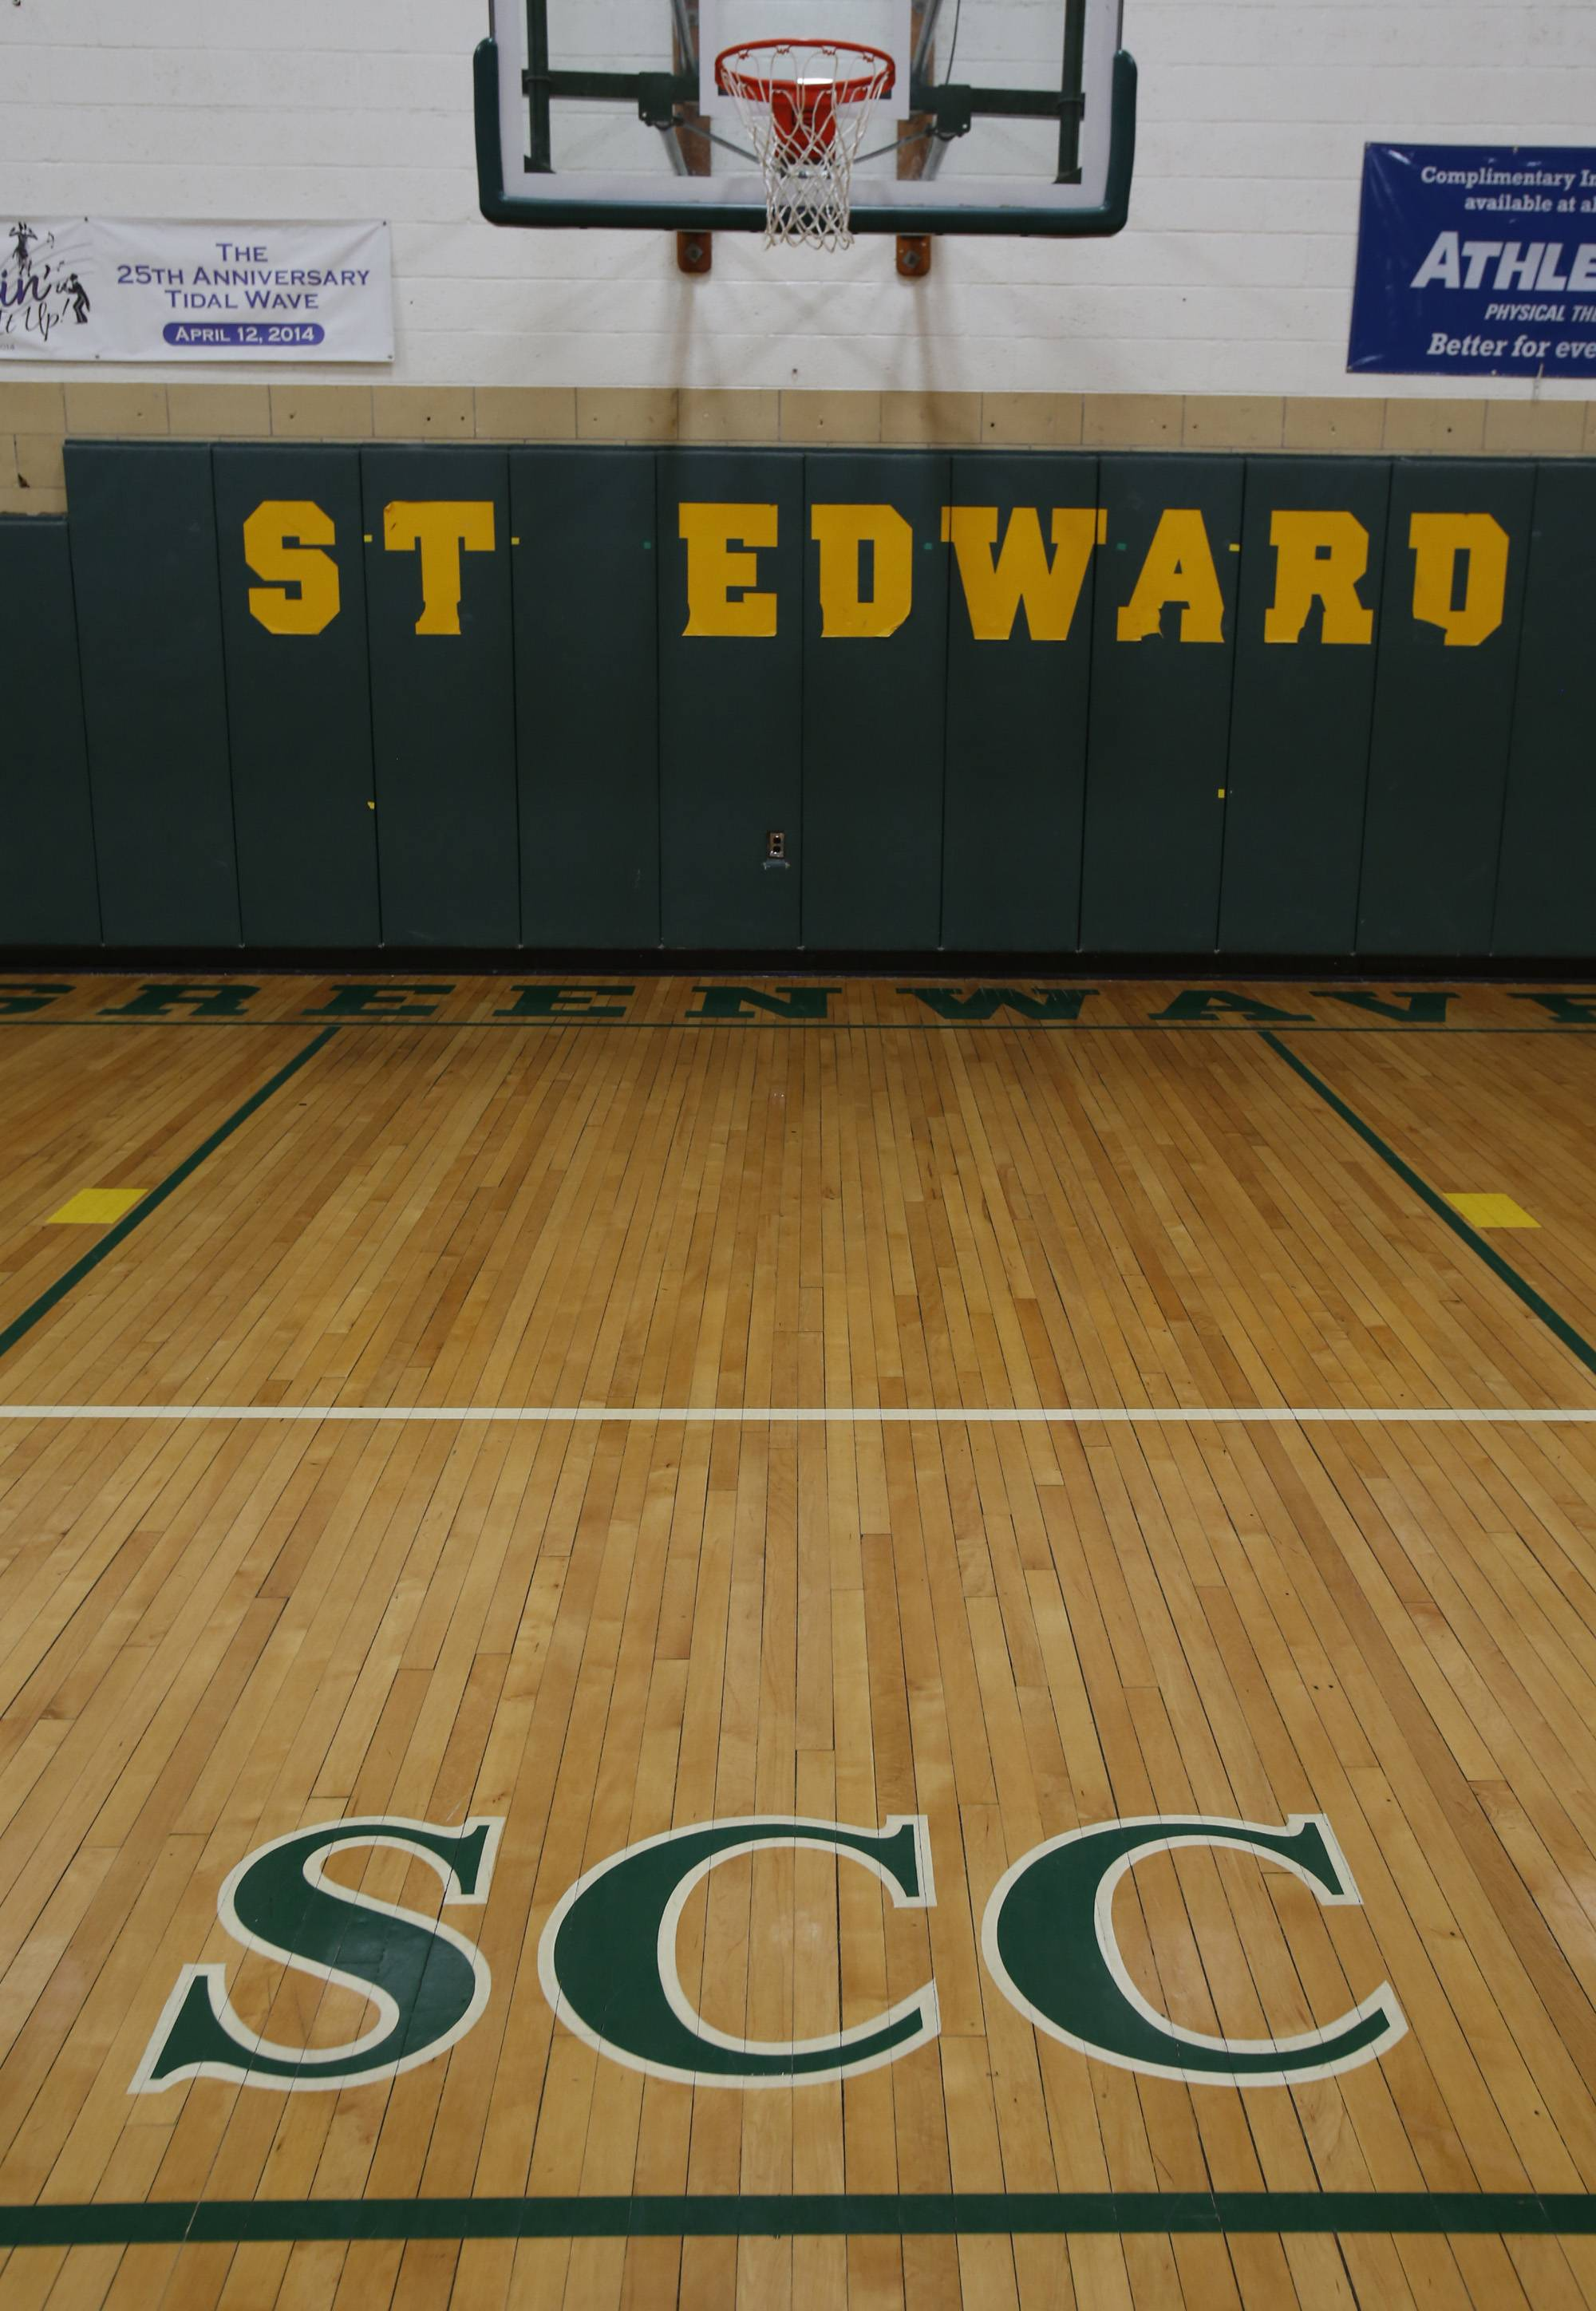 The SCC logo will be removed from the gym floor at St. Edward High School this summer as the school prepares to move to the Metro Suburban Conference this fall.